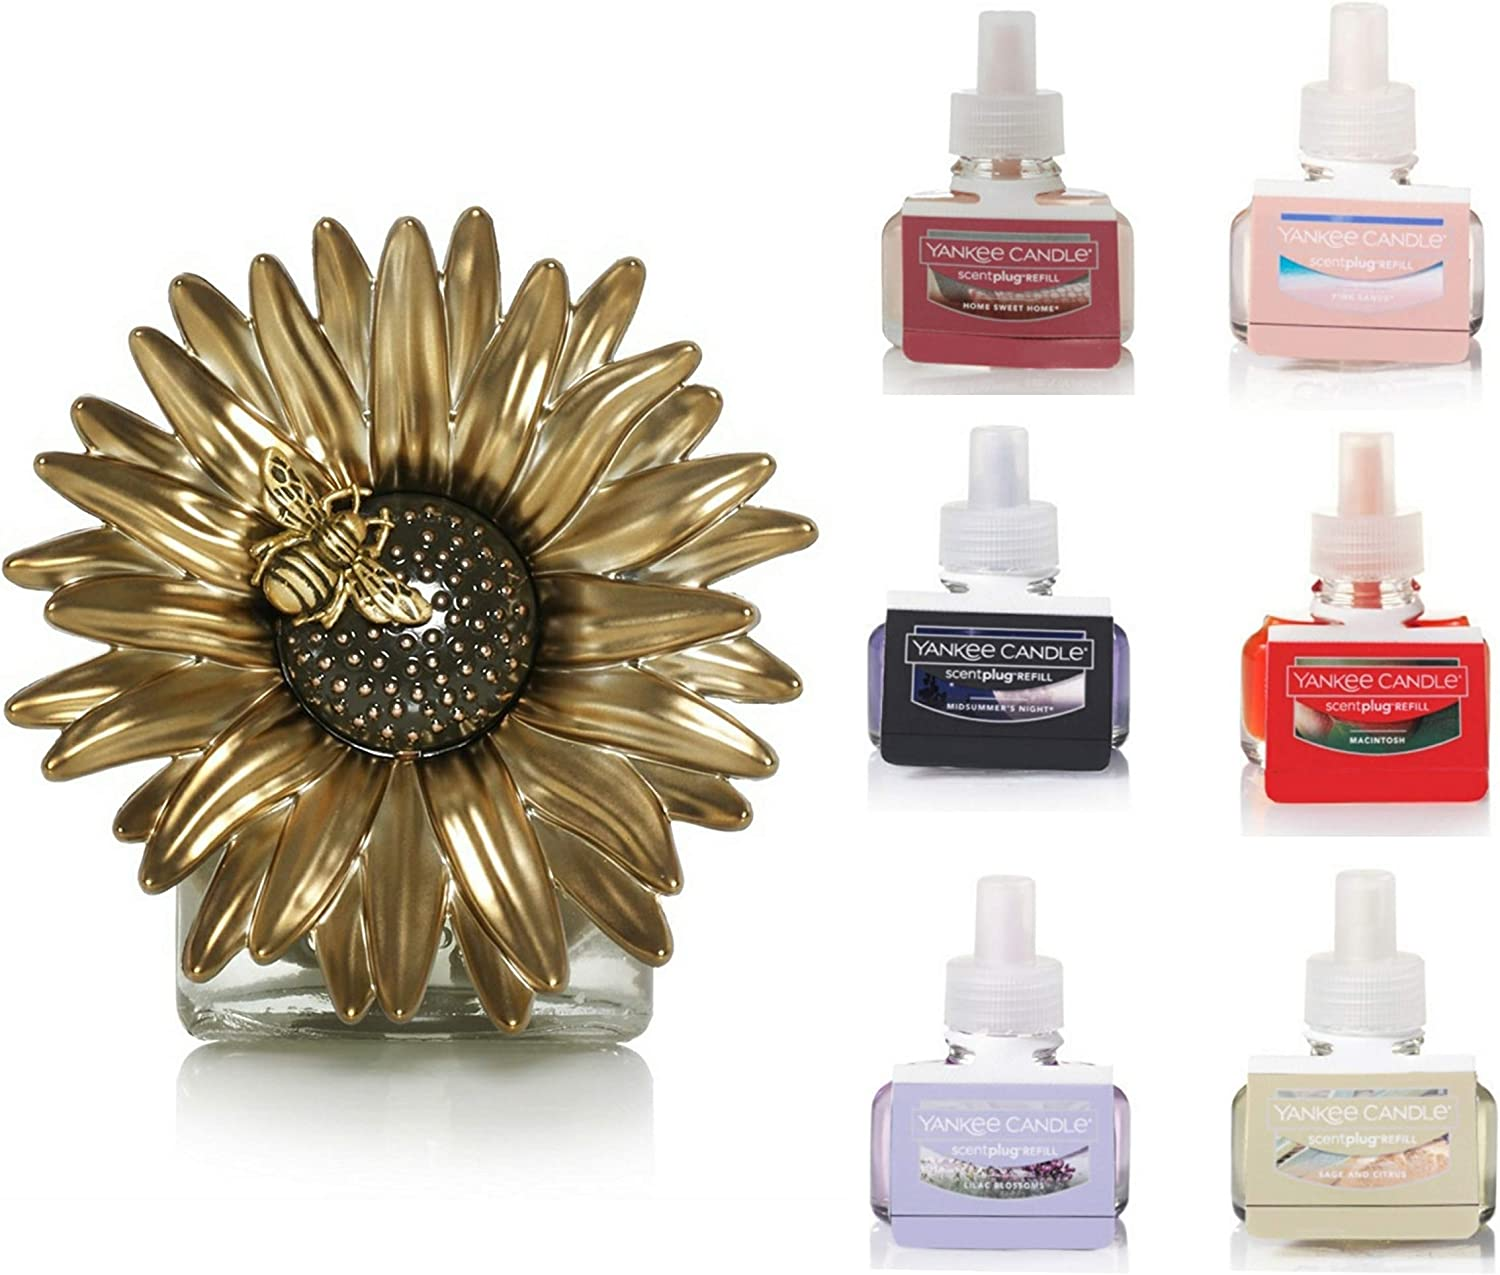 Yankee Trust Candle Starter Kit with Selling Sunflower Electric 1 Visitor